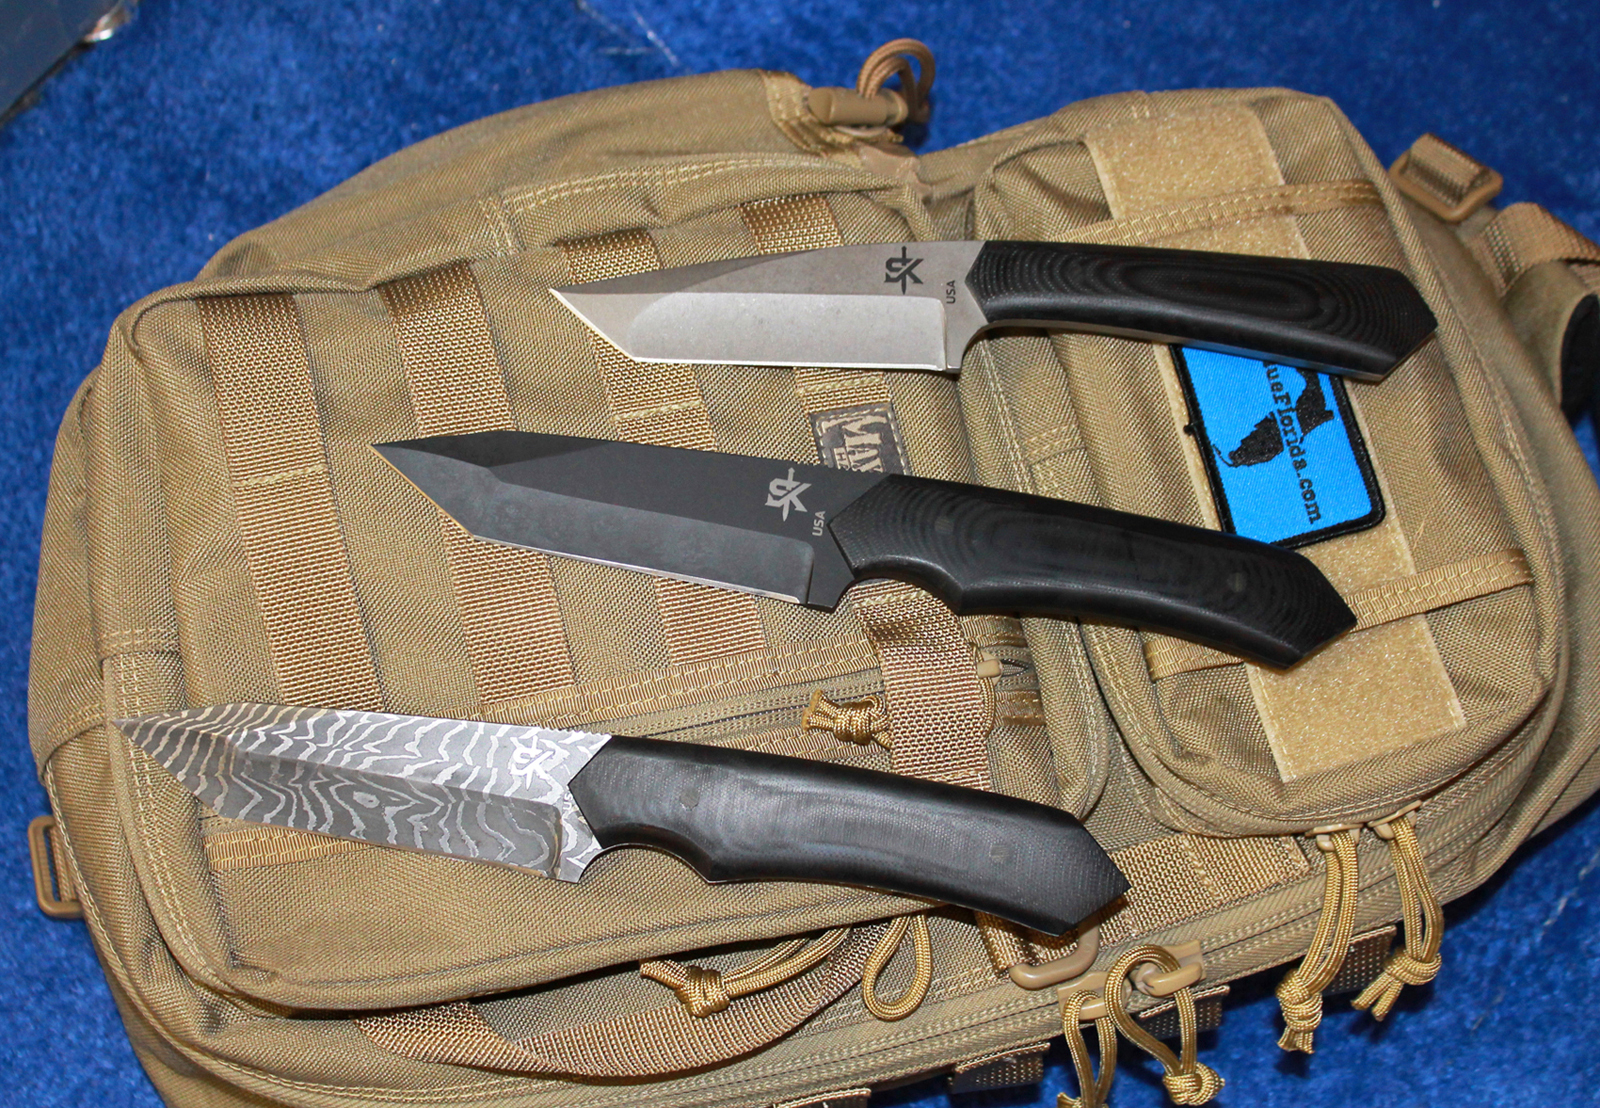 Schenk Knives Trio